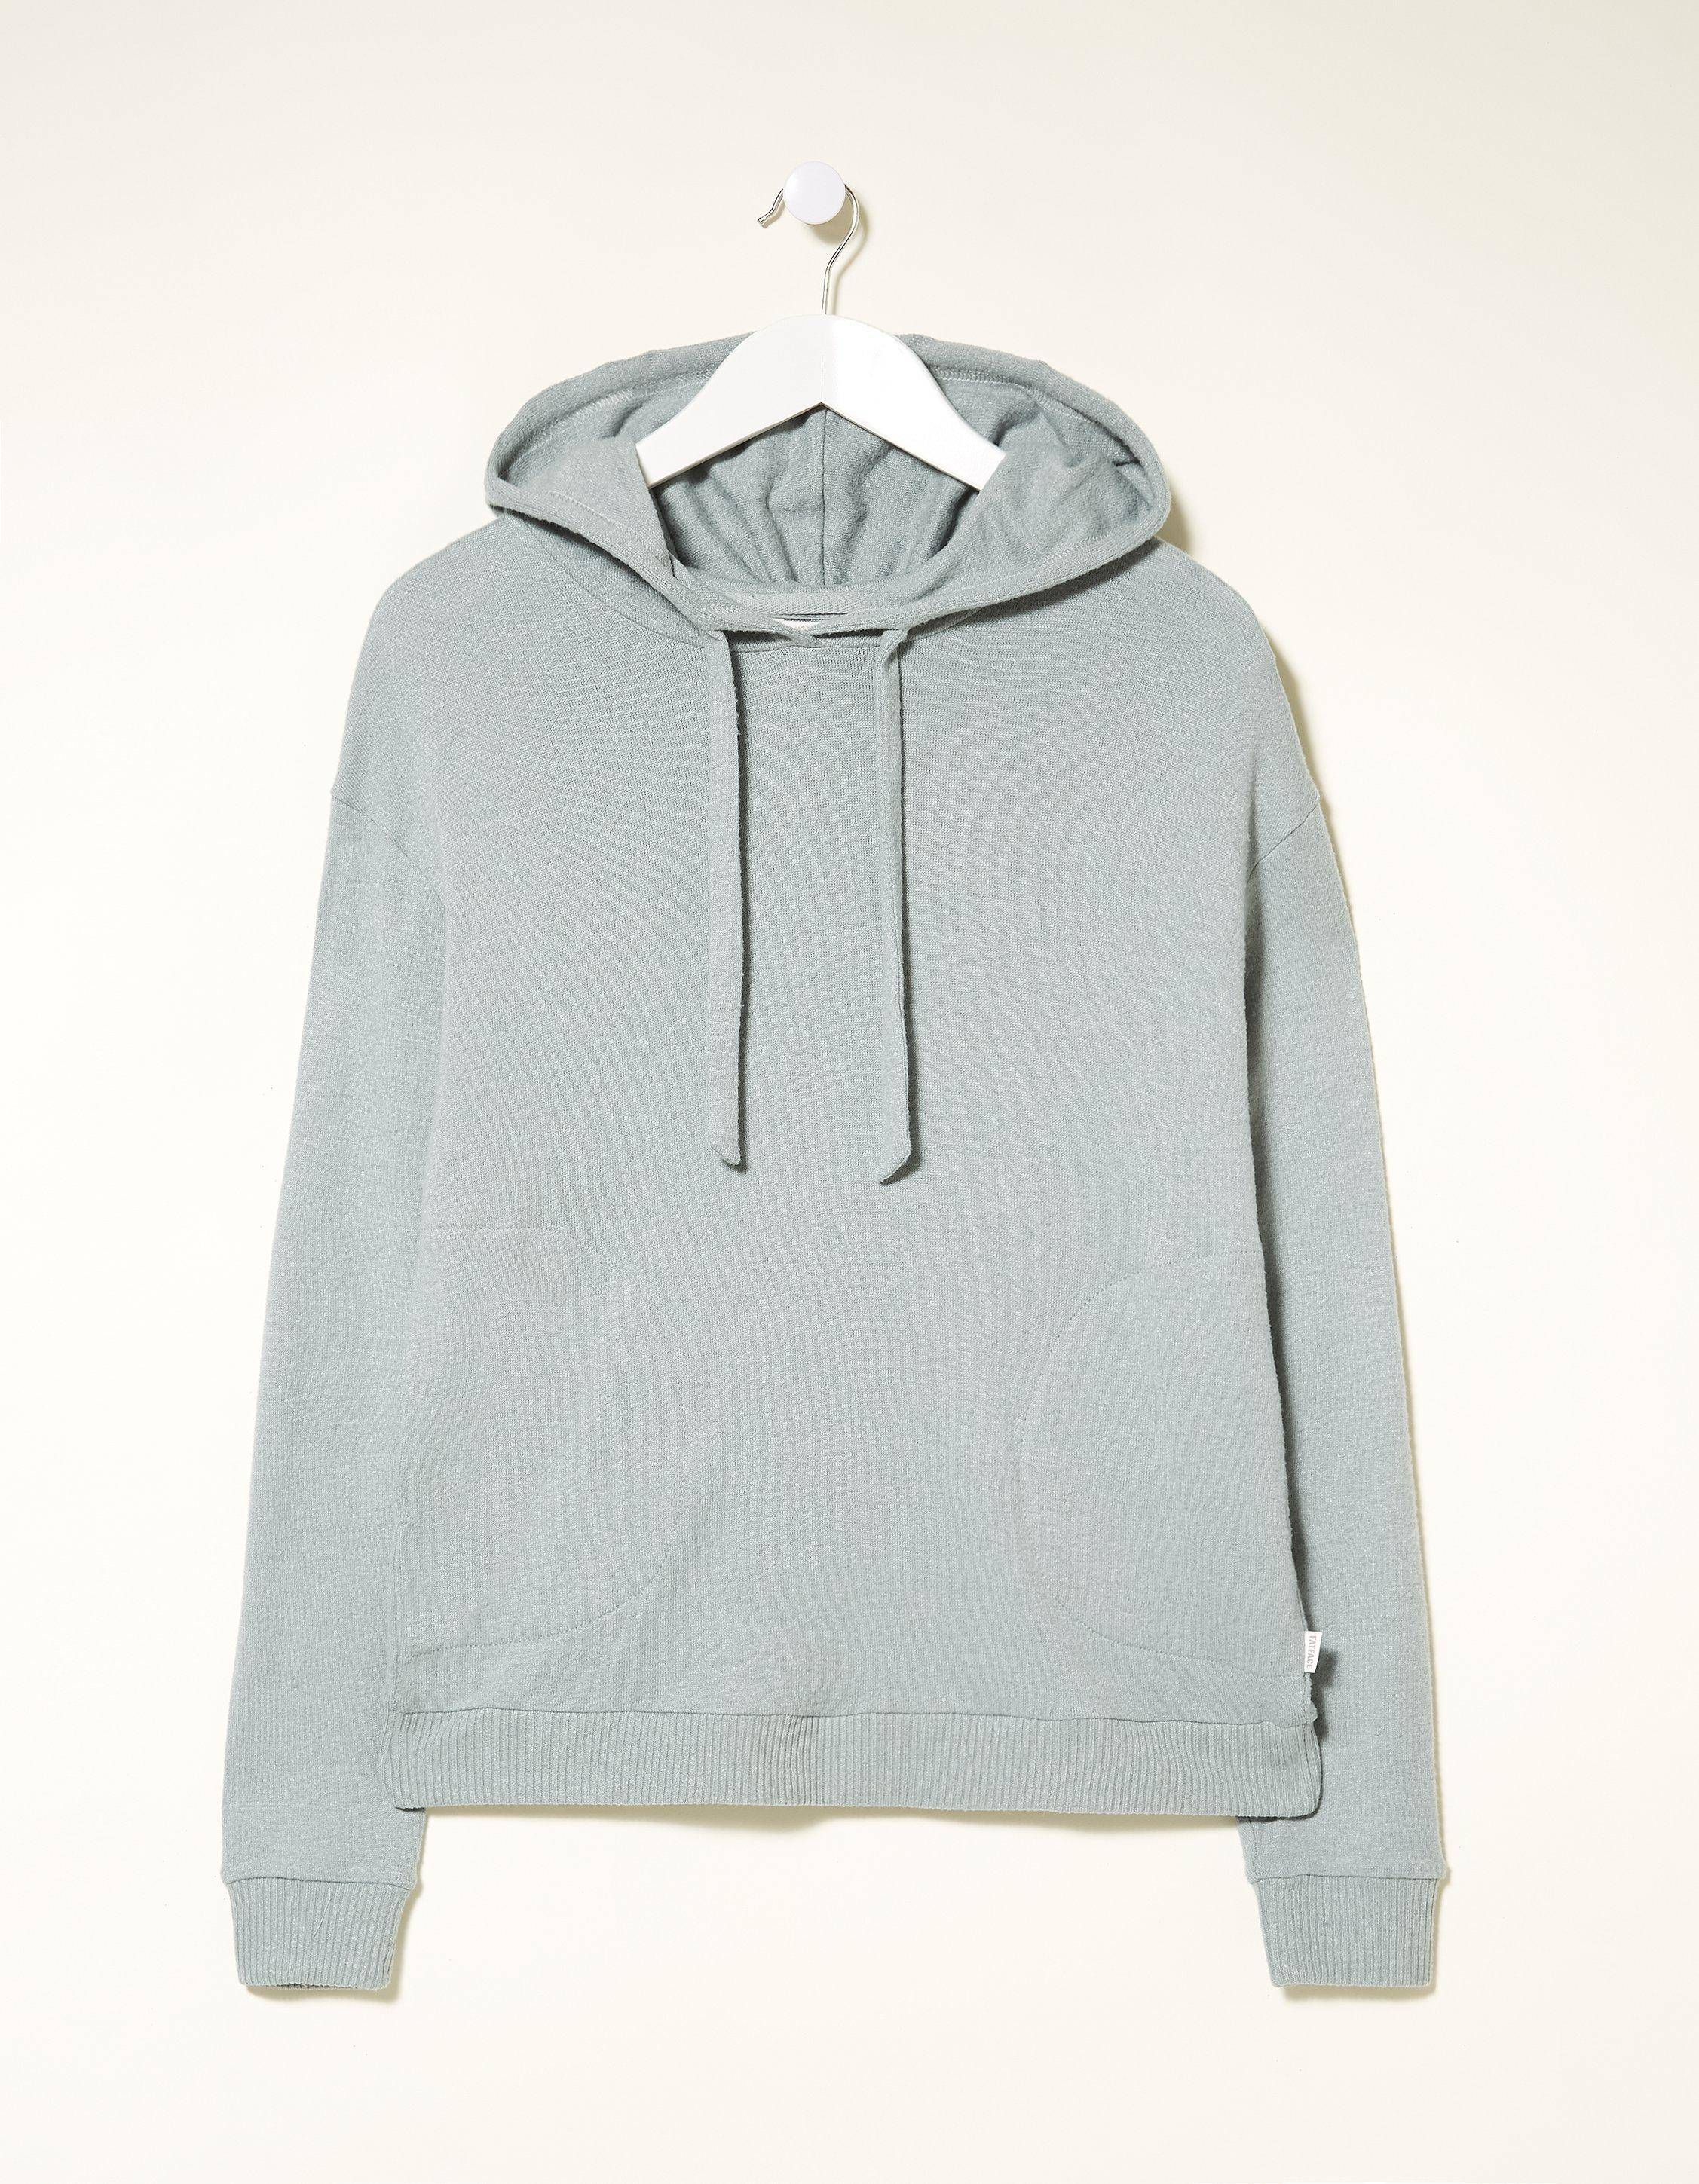 Fat Face Wittering Soft Hoody  - Size: 2